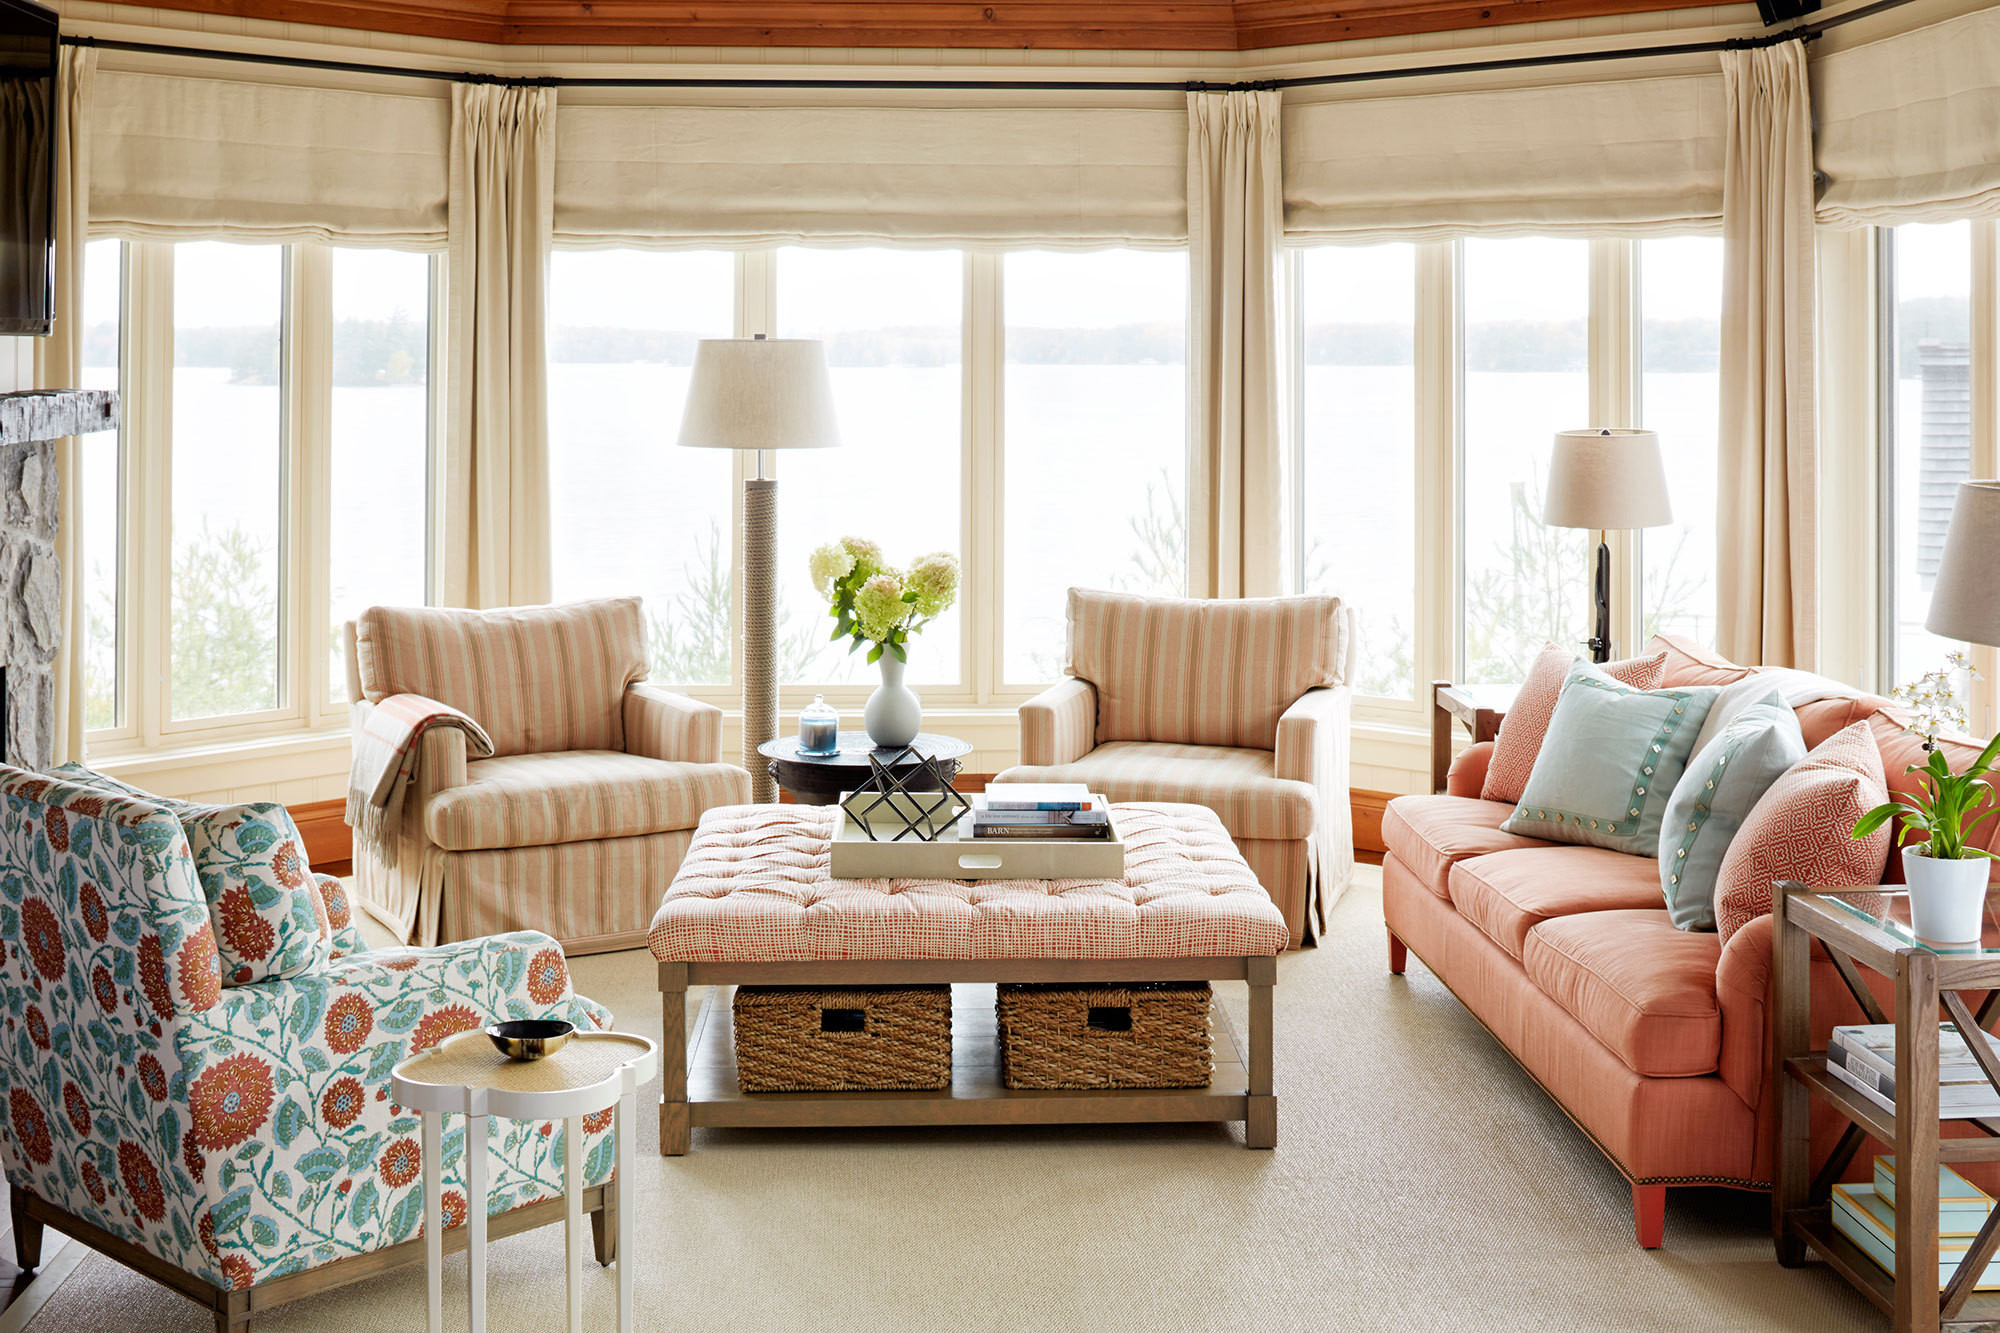 in the family room overlooking lake joseph upholstered furnishings and understatedhues create - Lake House Interior Design Ideas